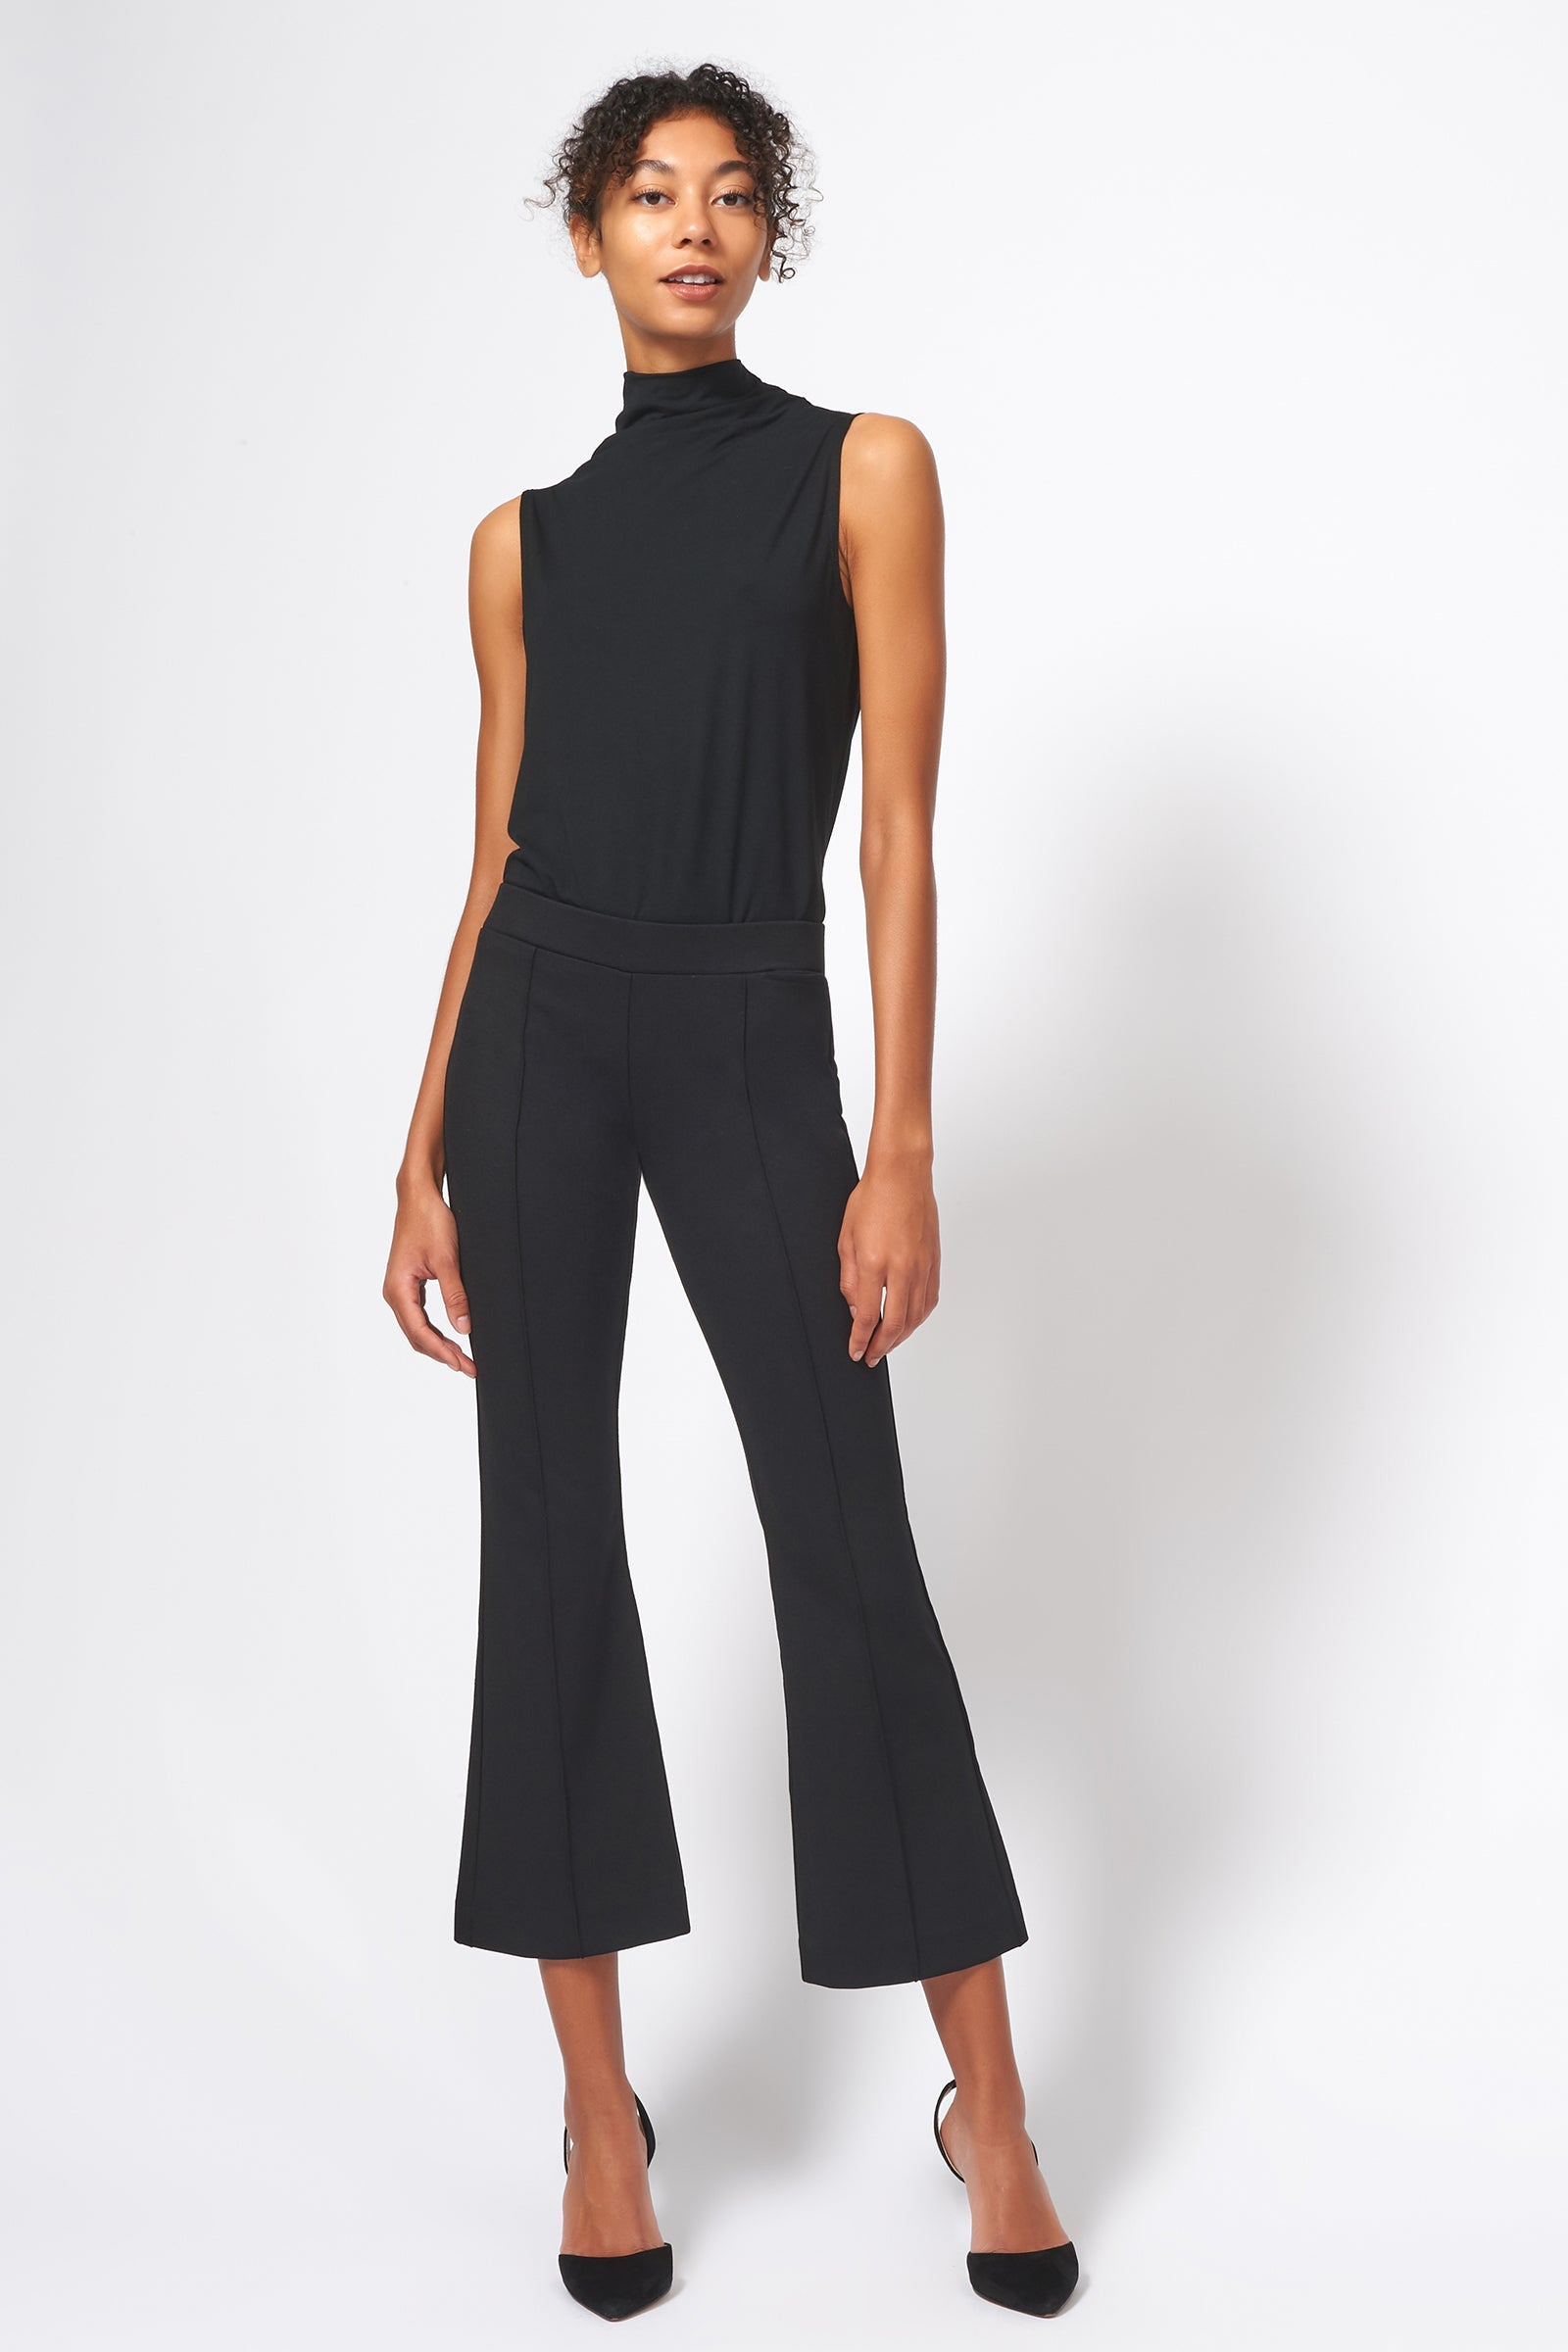 Kal Rieman Pintuck Ponte Crop Flare Pant in Black on Model Full Front Alternate View